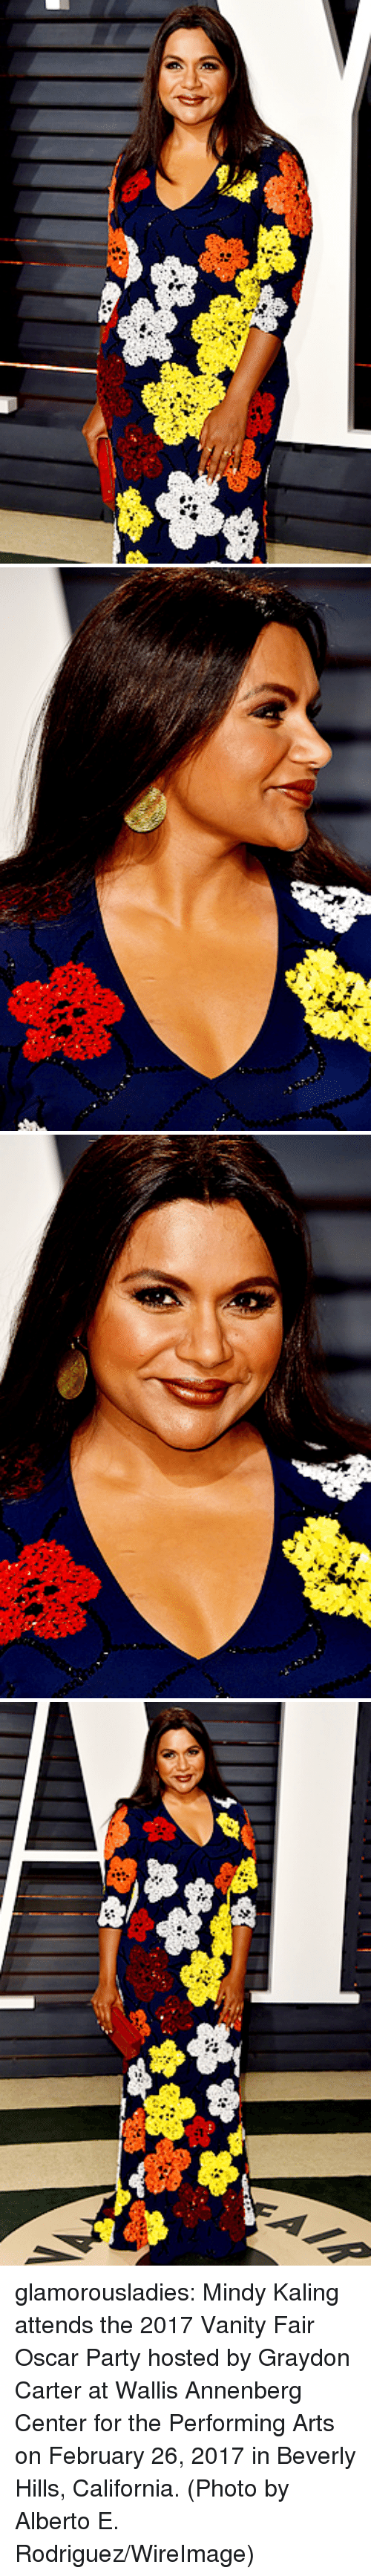 Party, Target, and Tumblr: glamorousladies:   Mindy Kaling attends the 2017 Vanity Fair Oscar Party hosted by Graydon Carter at Wallis Annenberg Center for the Performing Arts on February 26, 2017 in Beverly Hills, California. (Photo by Alberto E. Rodriguez/WireImage)